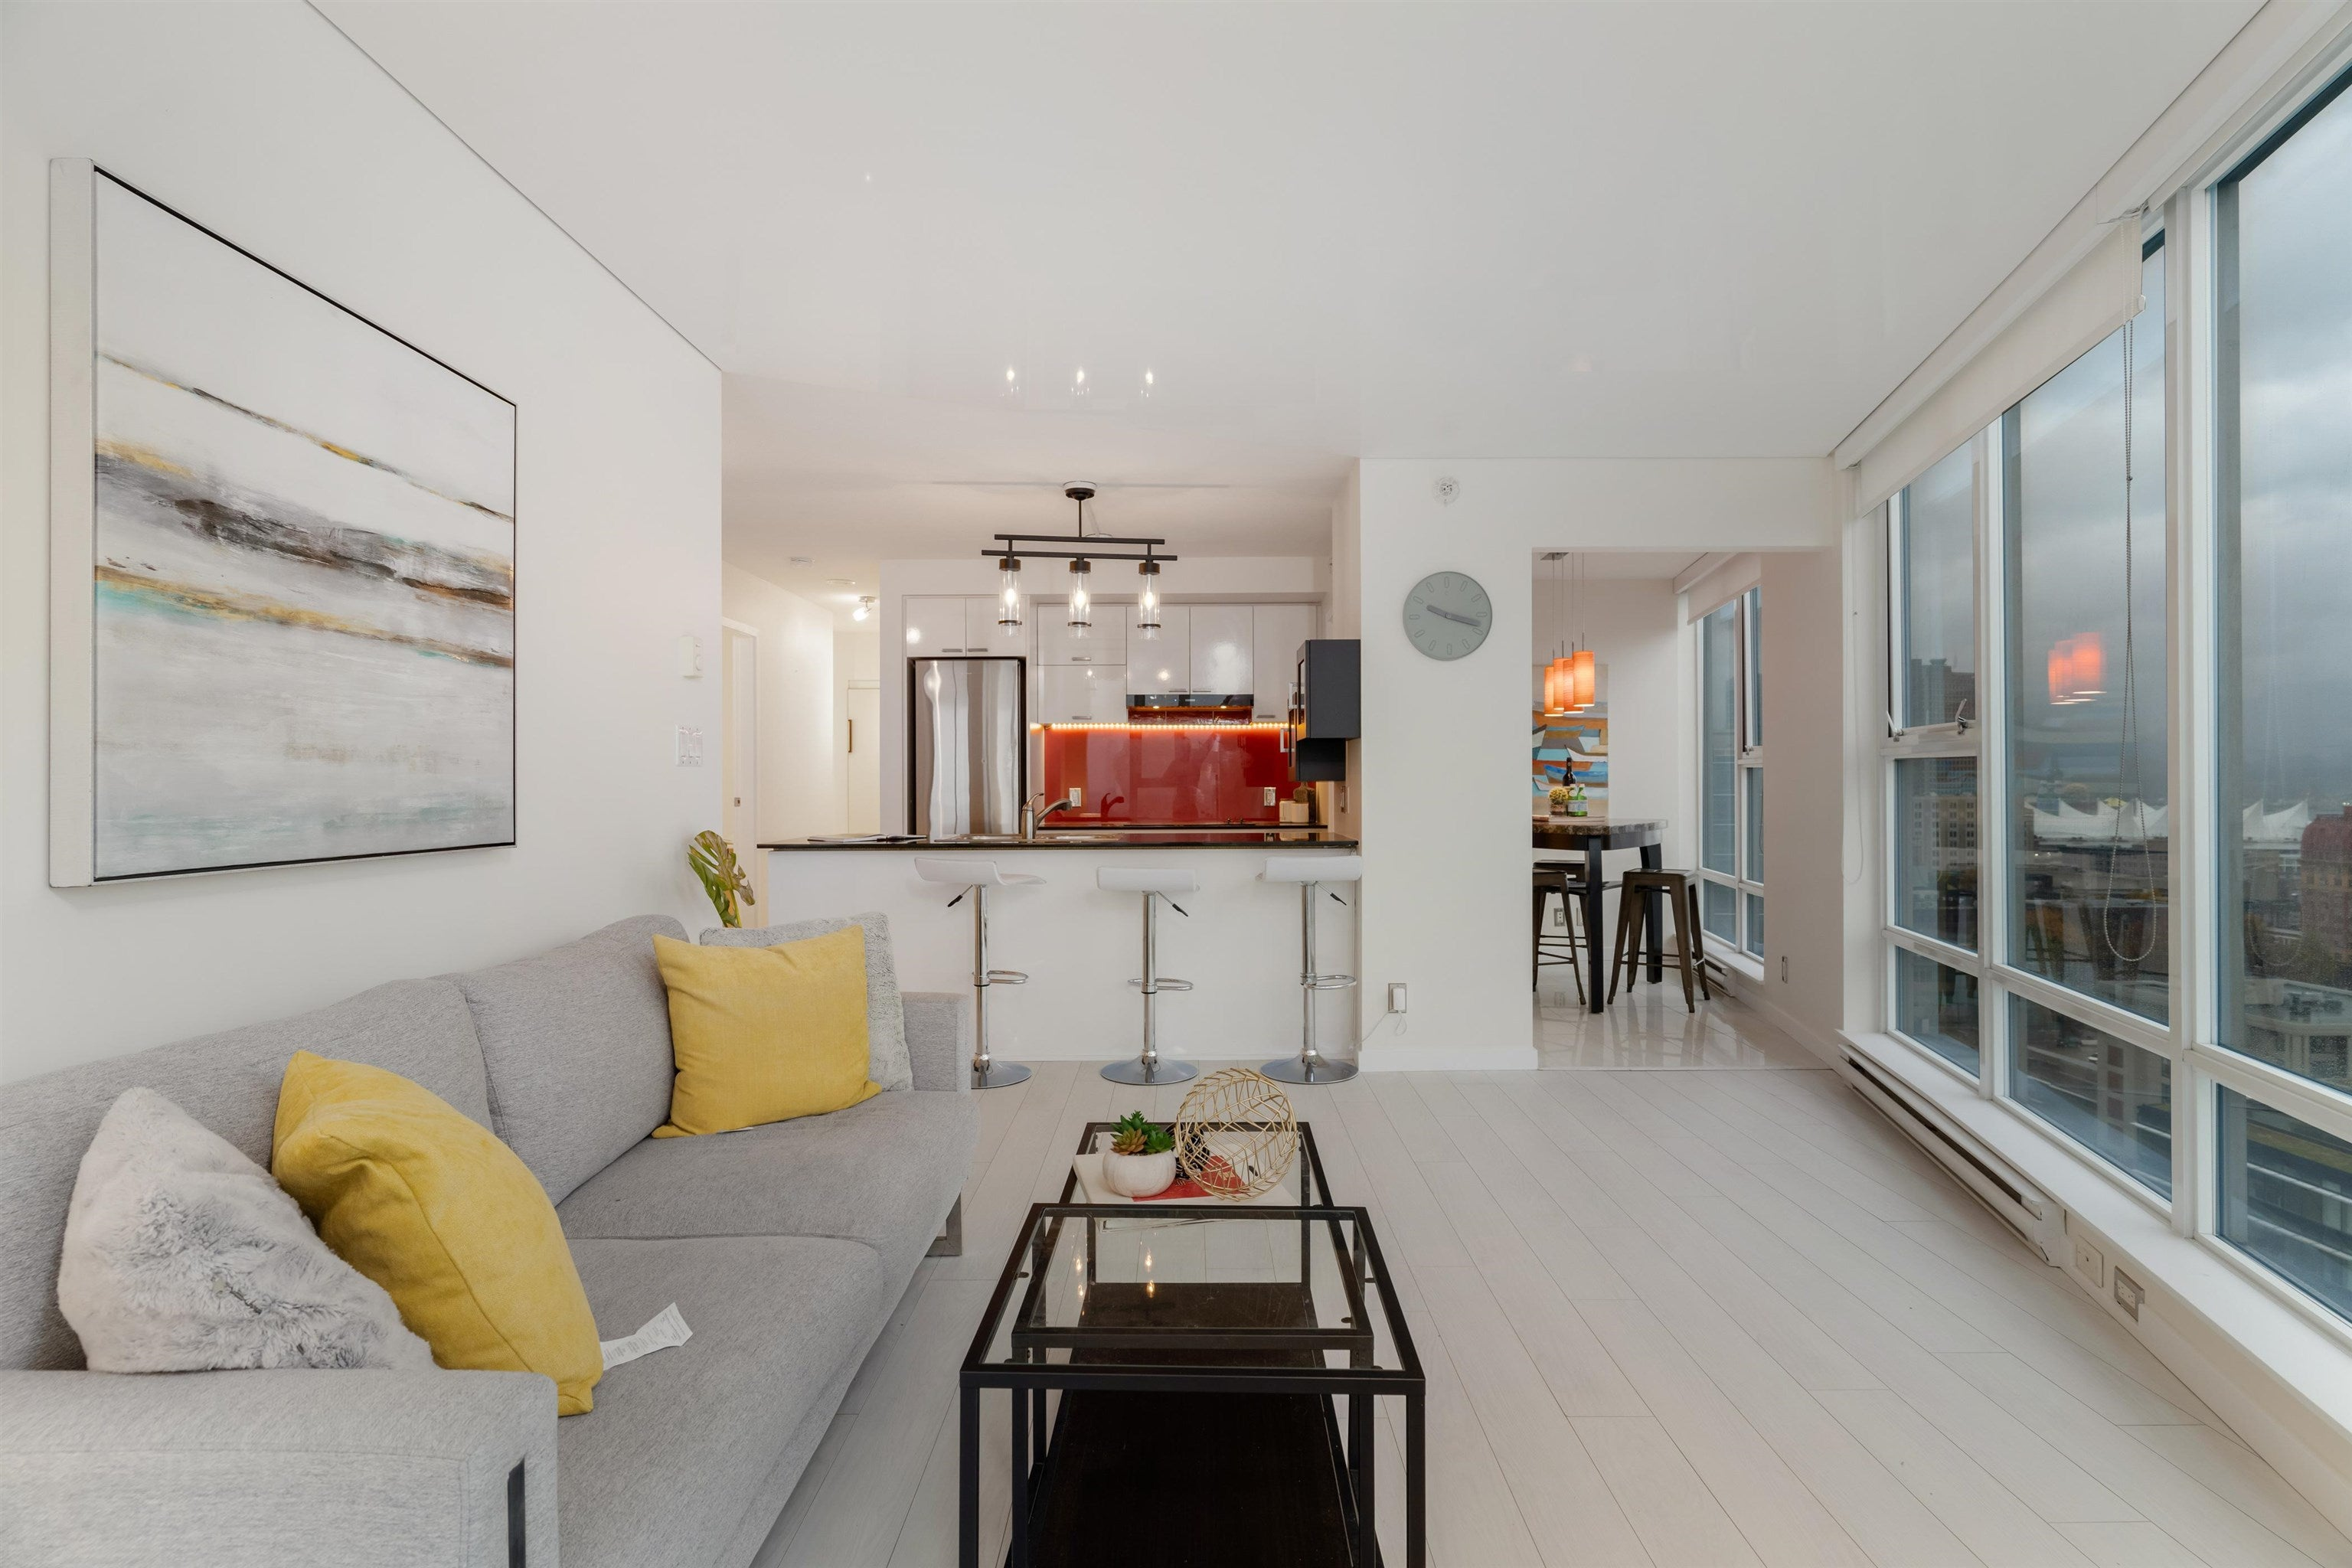 2208 602 CITADEL PARADE - Downtown VW Apartment/Condo for sale, 2 Bedrooms (R2627188) - #1